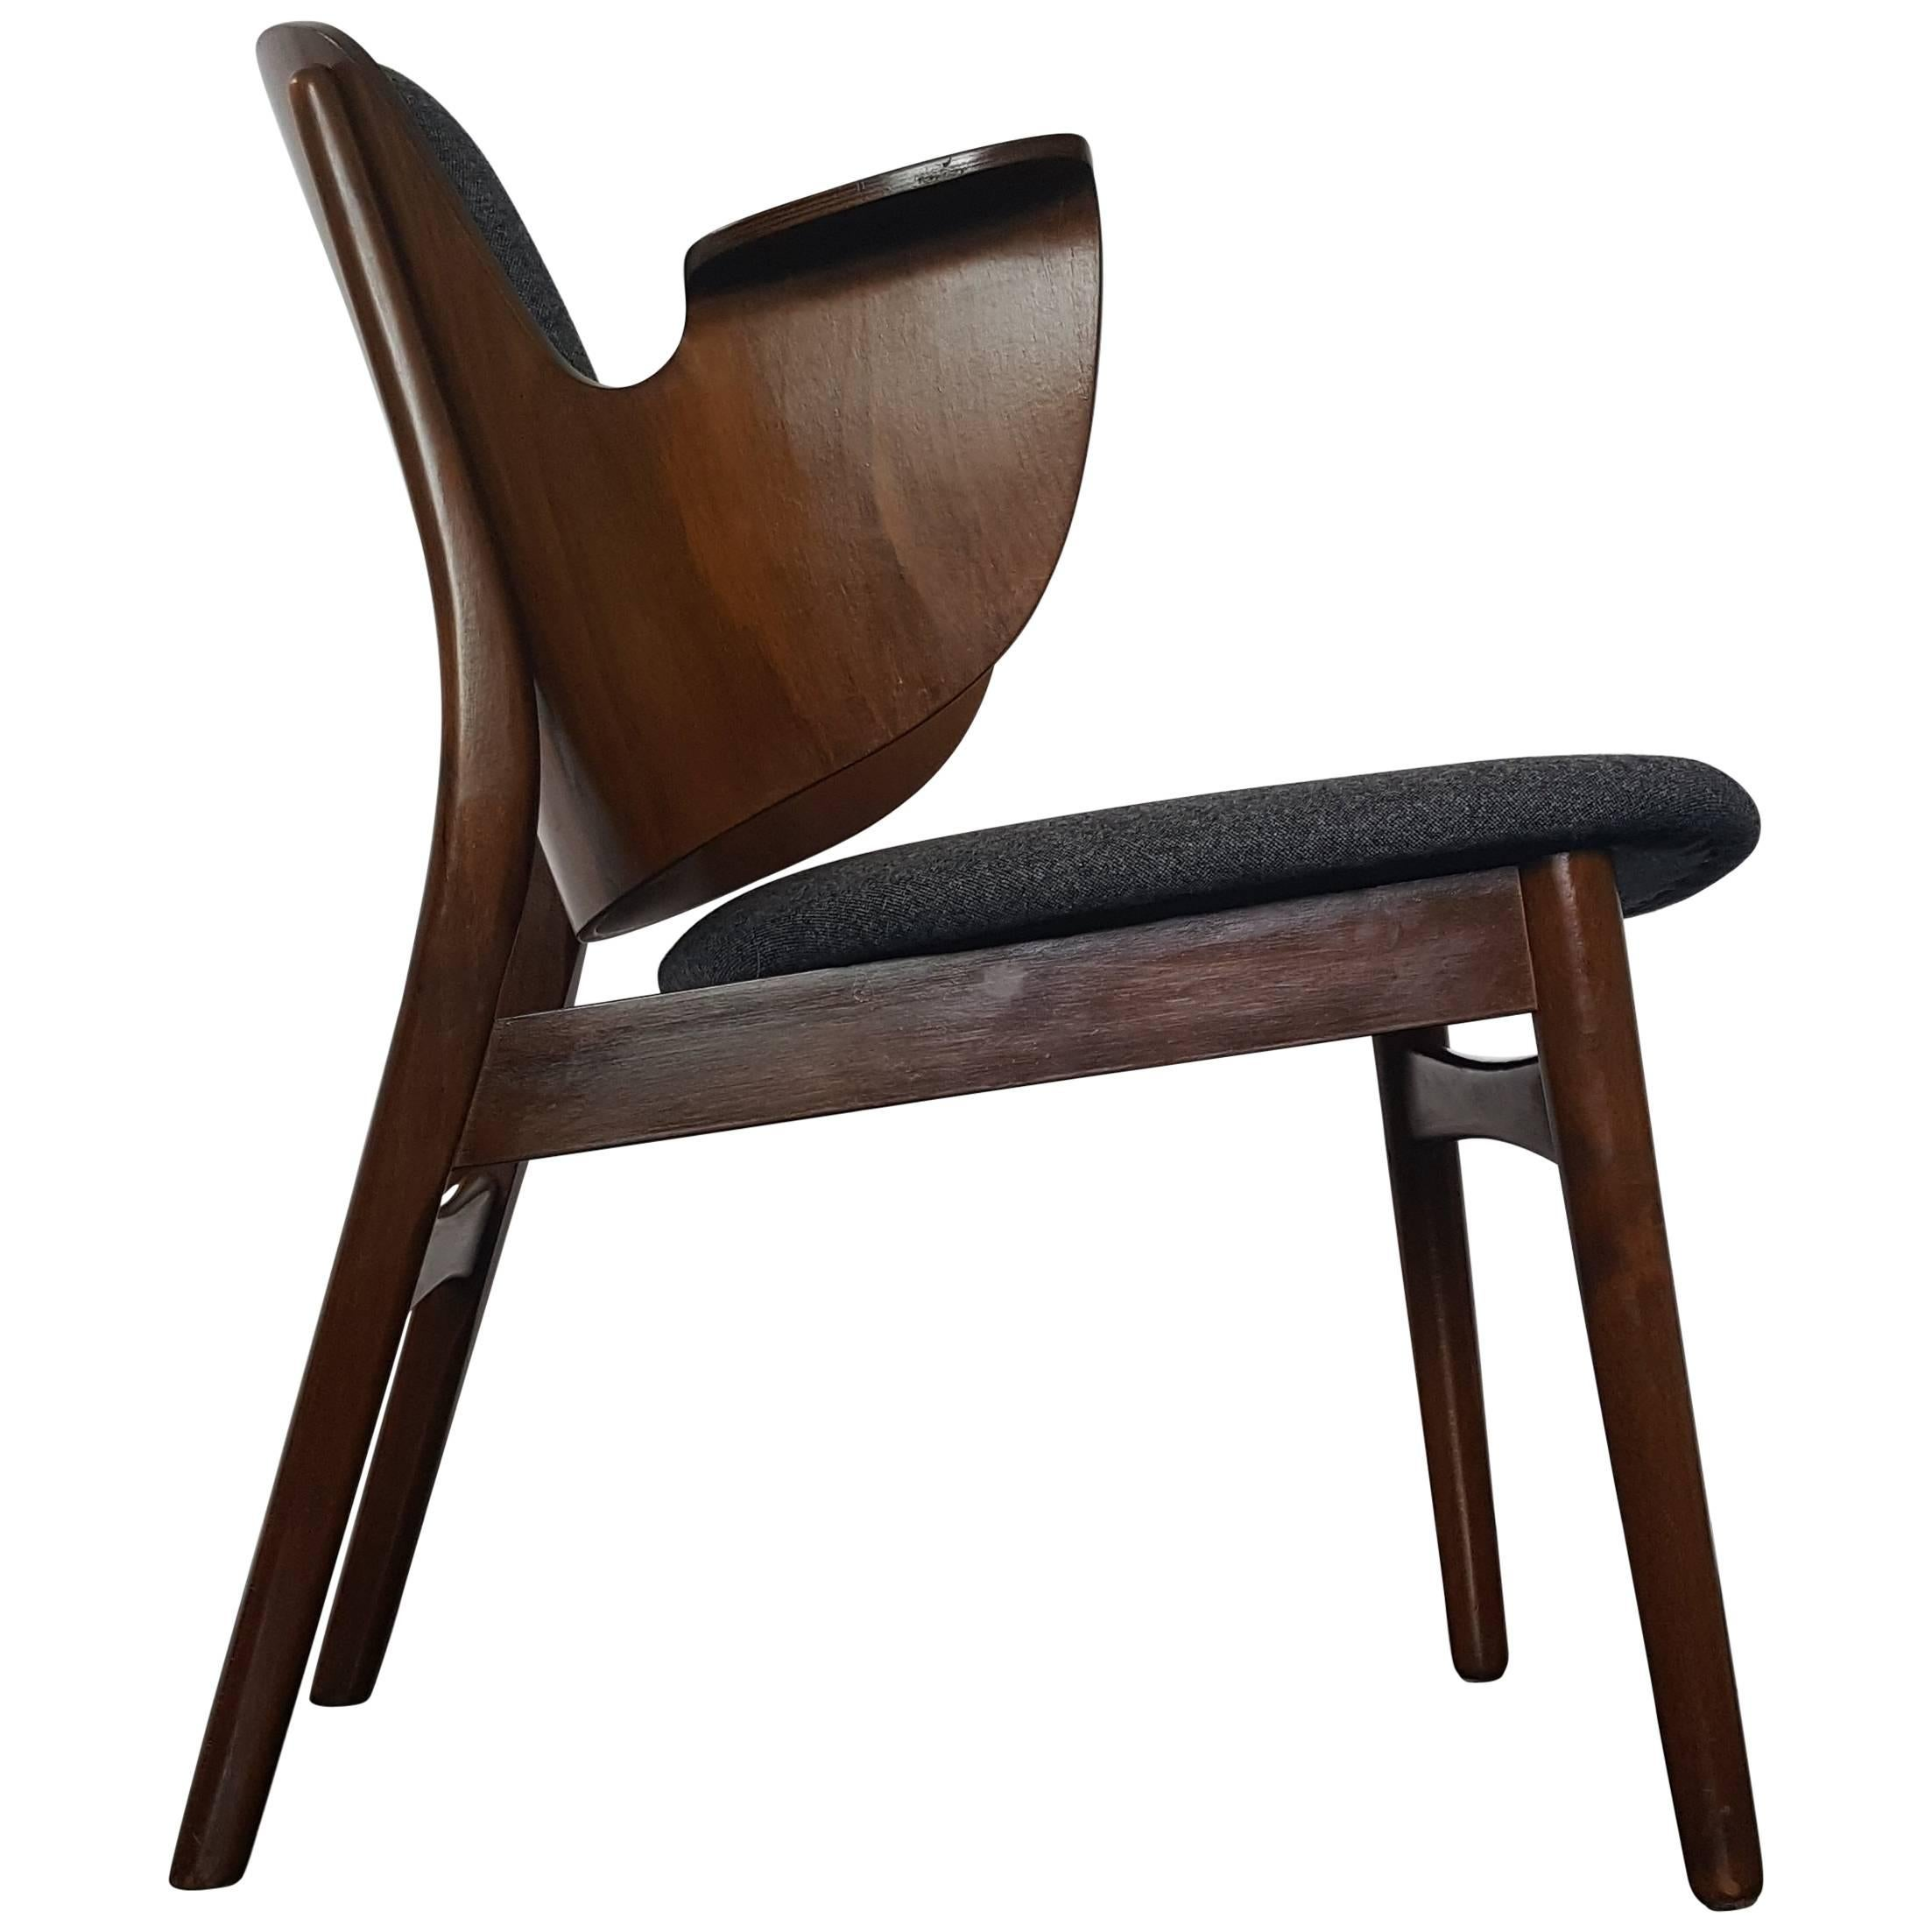 Hans Olsen Lounge Shell Chair Model 107 For Bramin Mobler, Denmark, 1950s 1